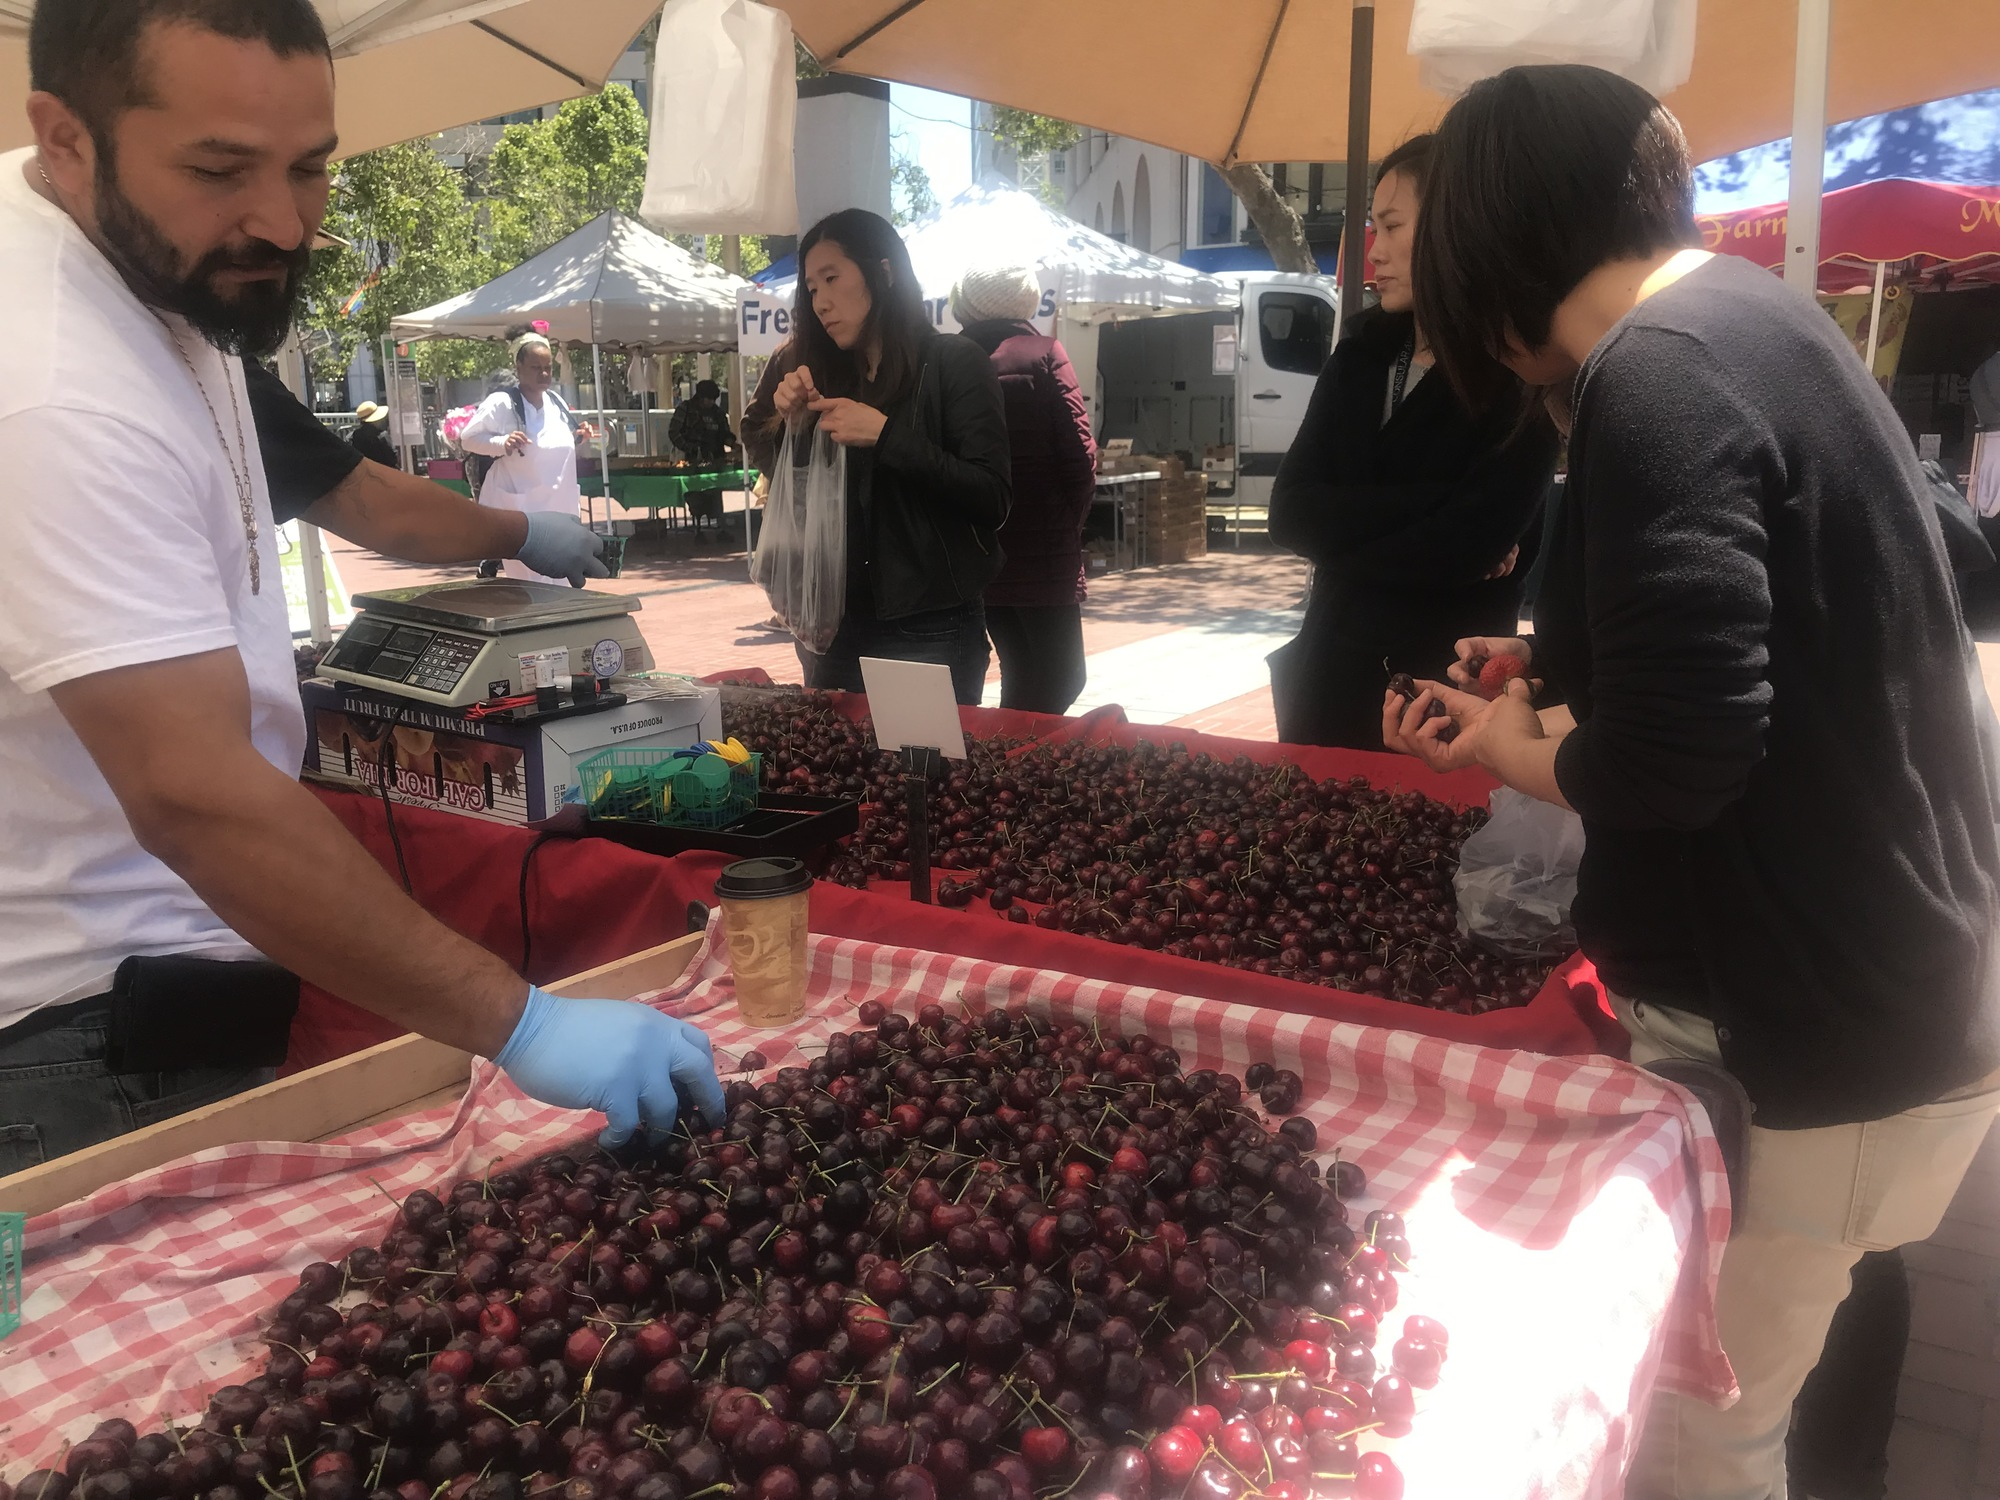 Cherries for sale at the market on Friday, June 7. |  PHOTO: COURTESY OF THE CIVIC CENTER COMMUNITY BENEFIT DISTRICT